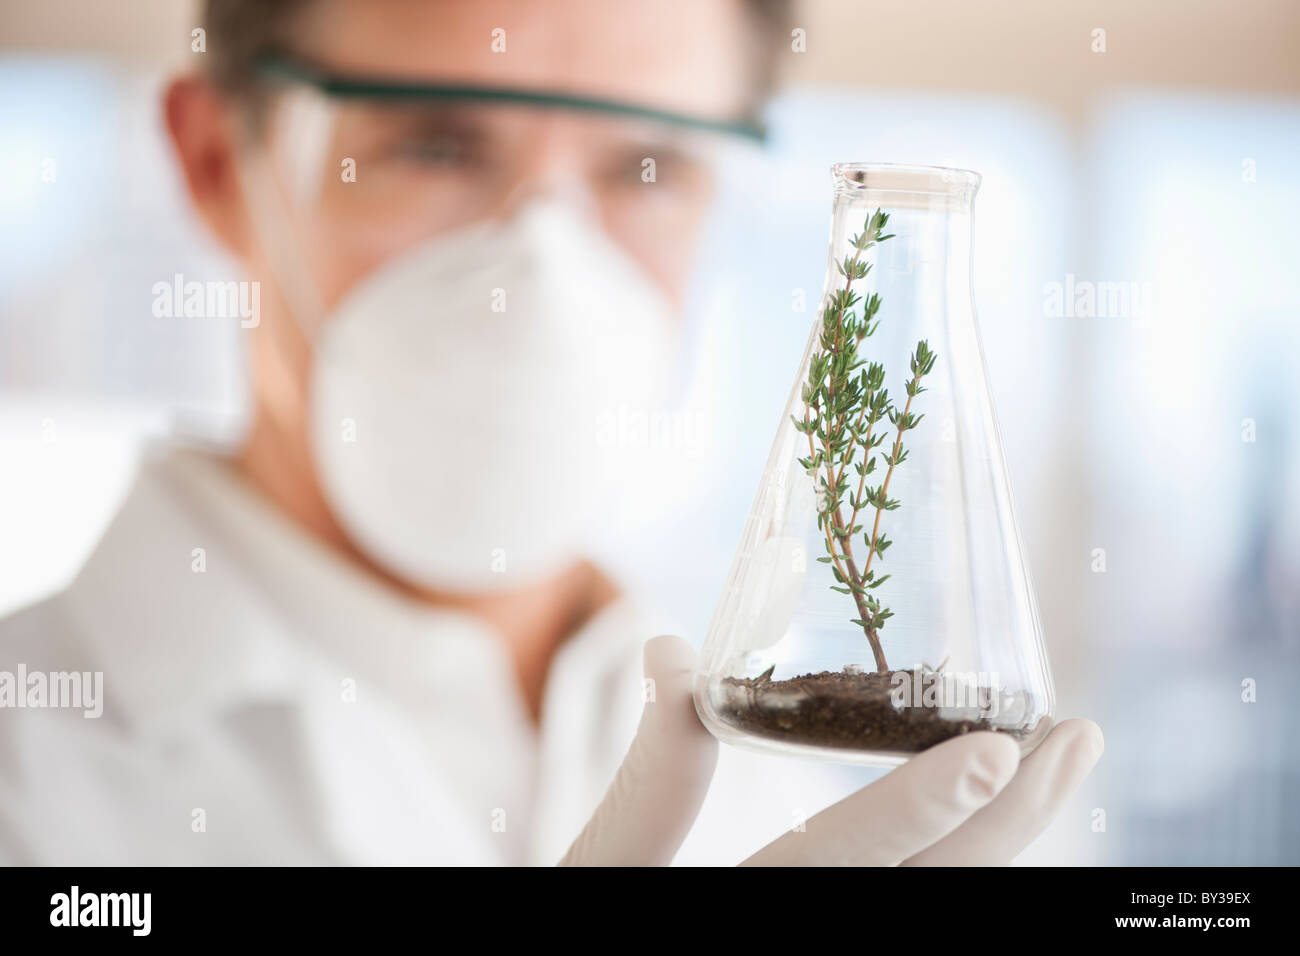 USA, New Jersey, Jersey City, Botanic laboratory - Stock Image